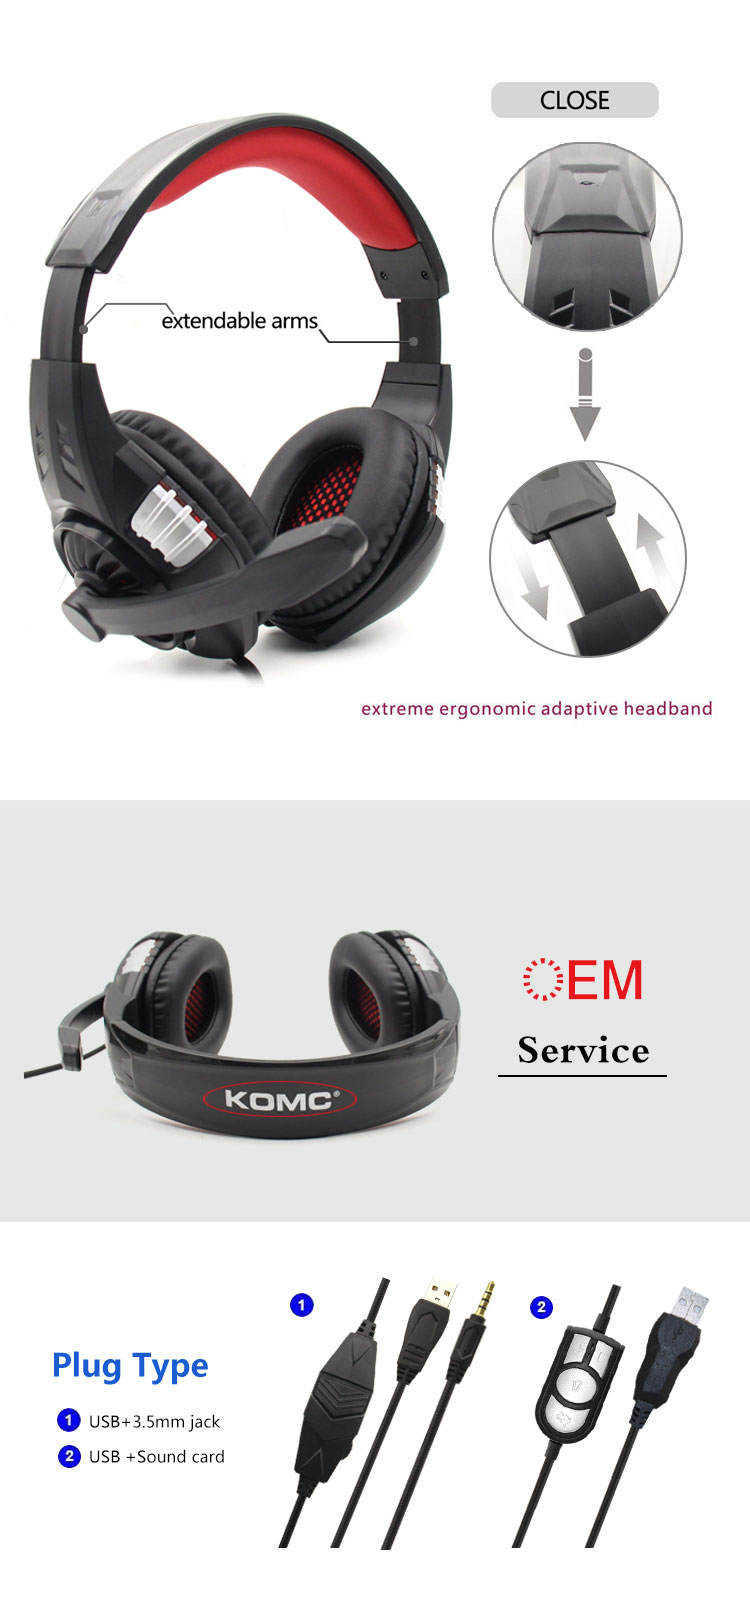 2019 Hot Sale Black Game Headset headphones with Mic for Gaming, gaming head sets